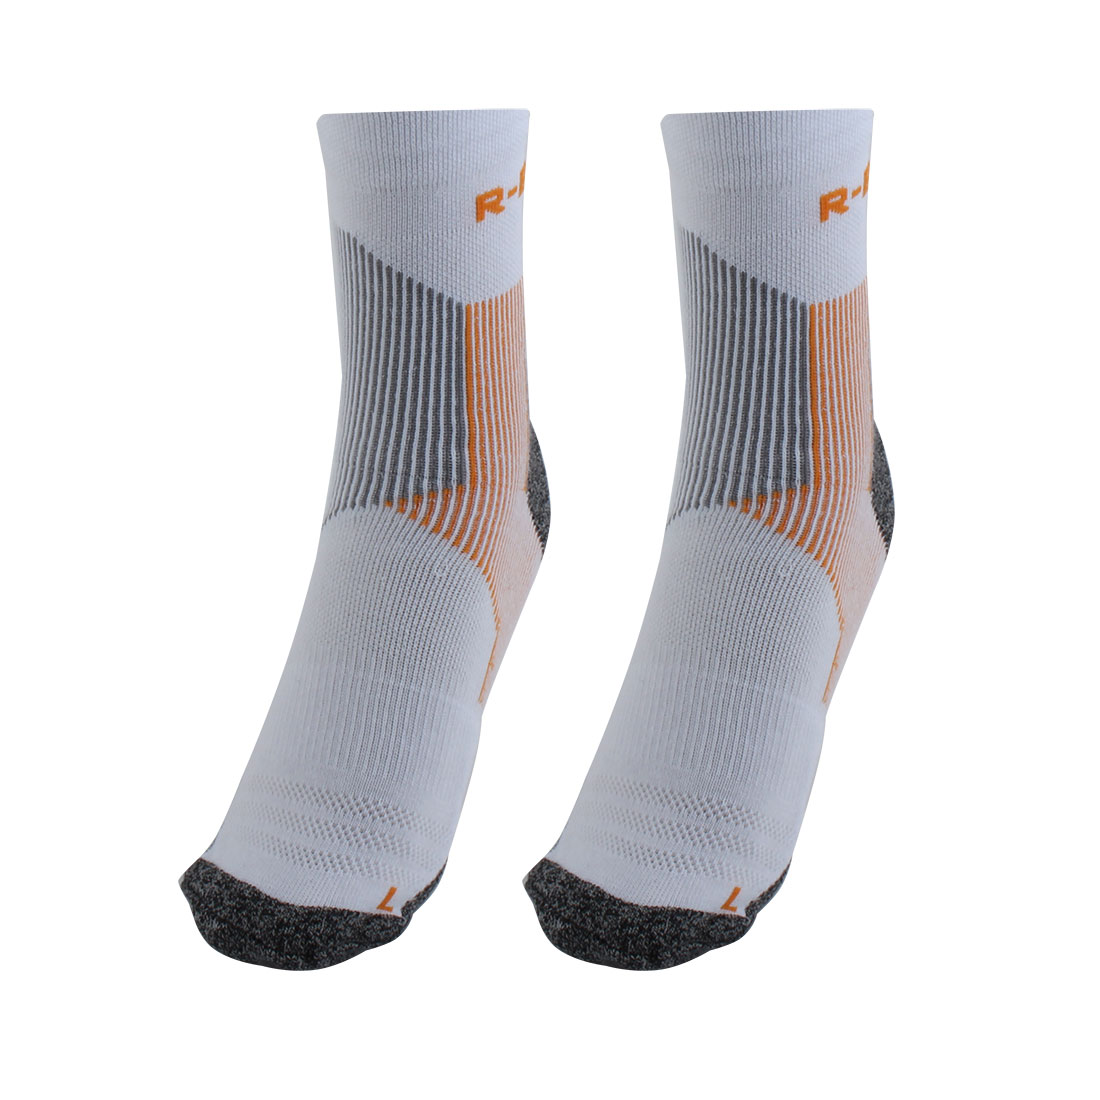 R-BAO Authorized Jogging Cotton Blend Compression Cycling Socks